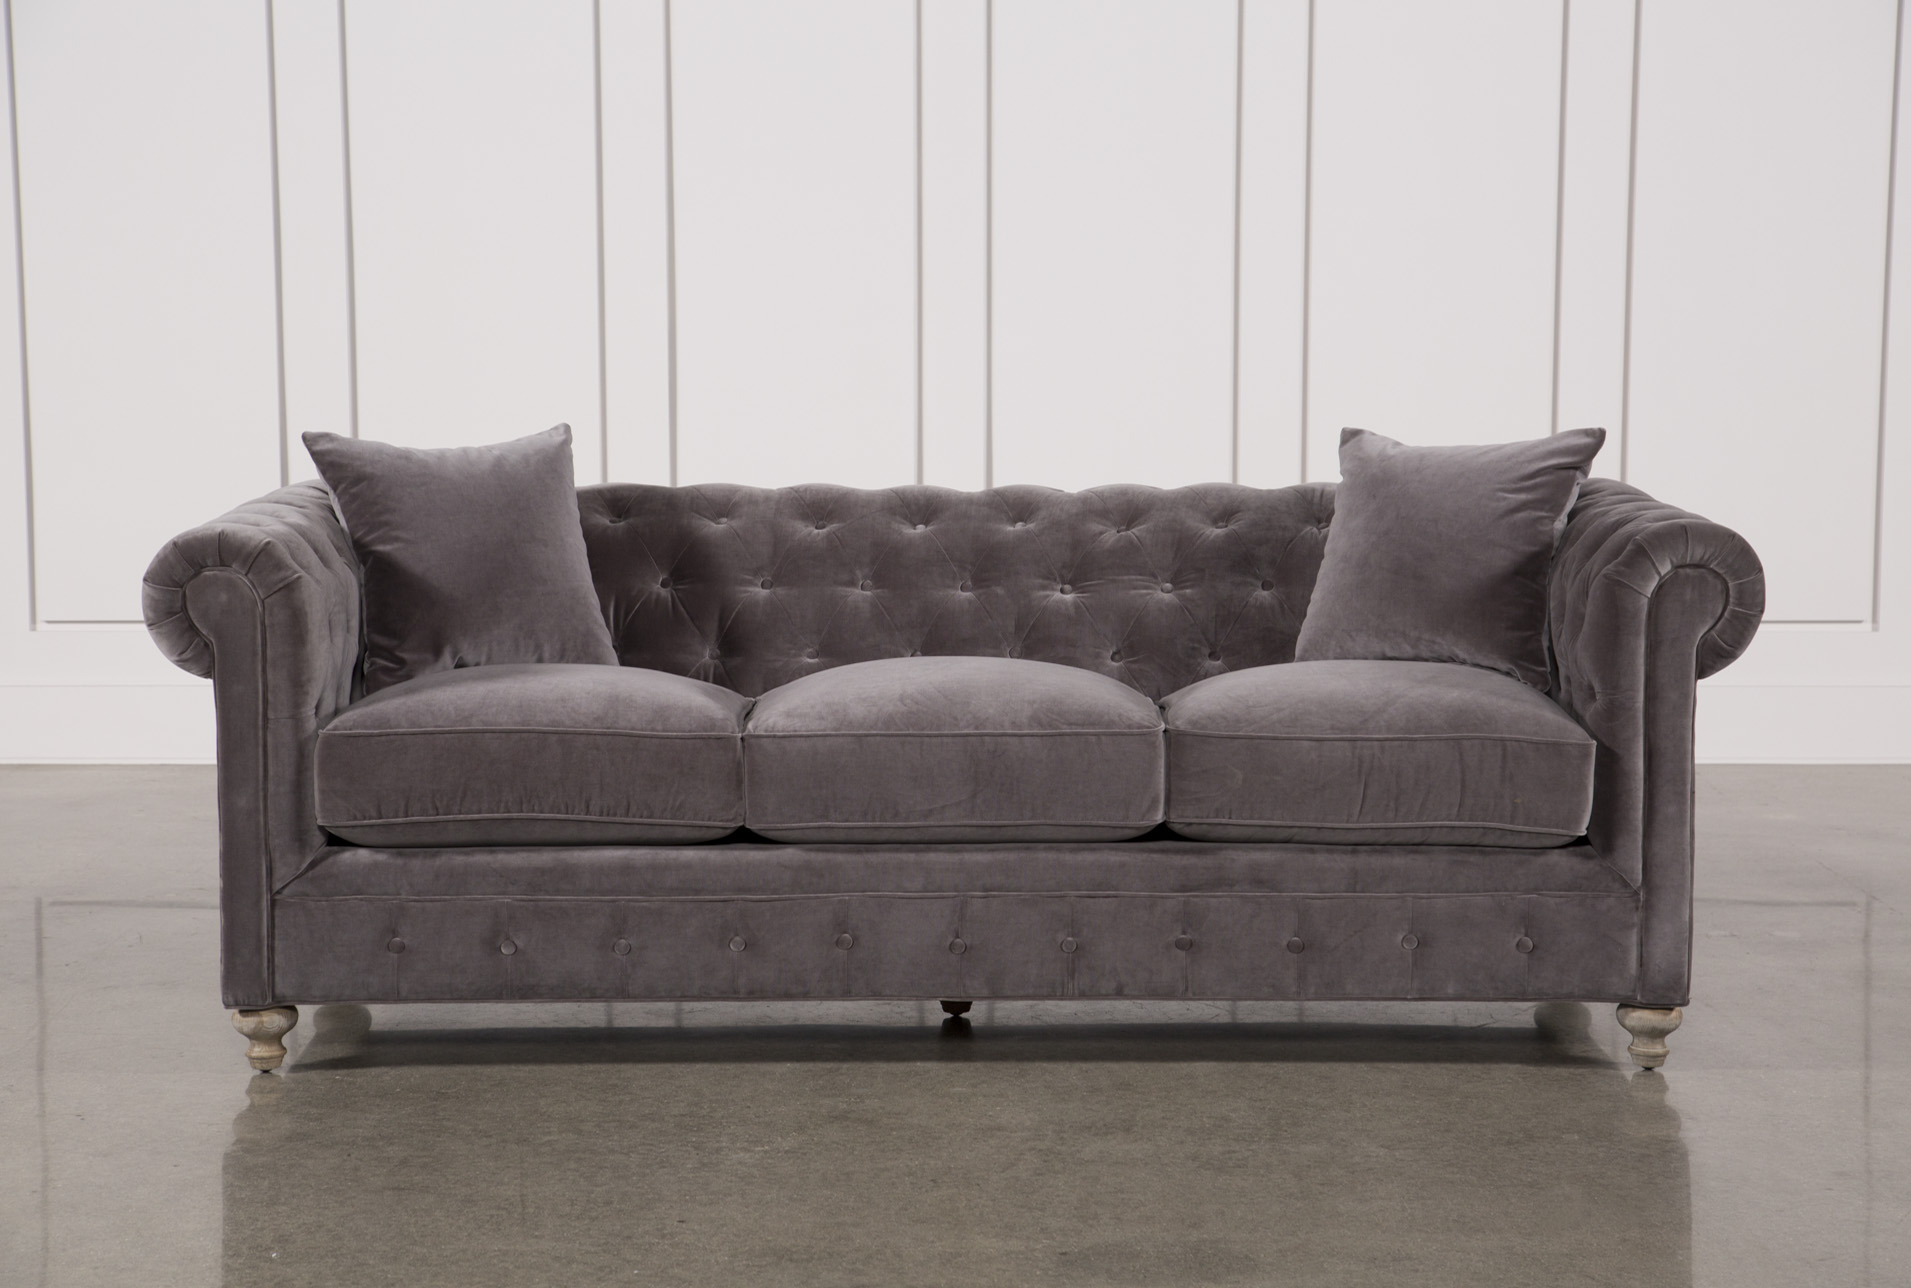 Mansfield 96 Inch Graphite Velvet Sofa In 2018 | Products Inside Mansfield Graphite Velvet Sofa Chairs (View 2 of 25)